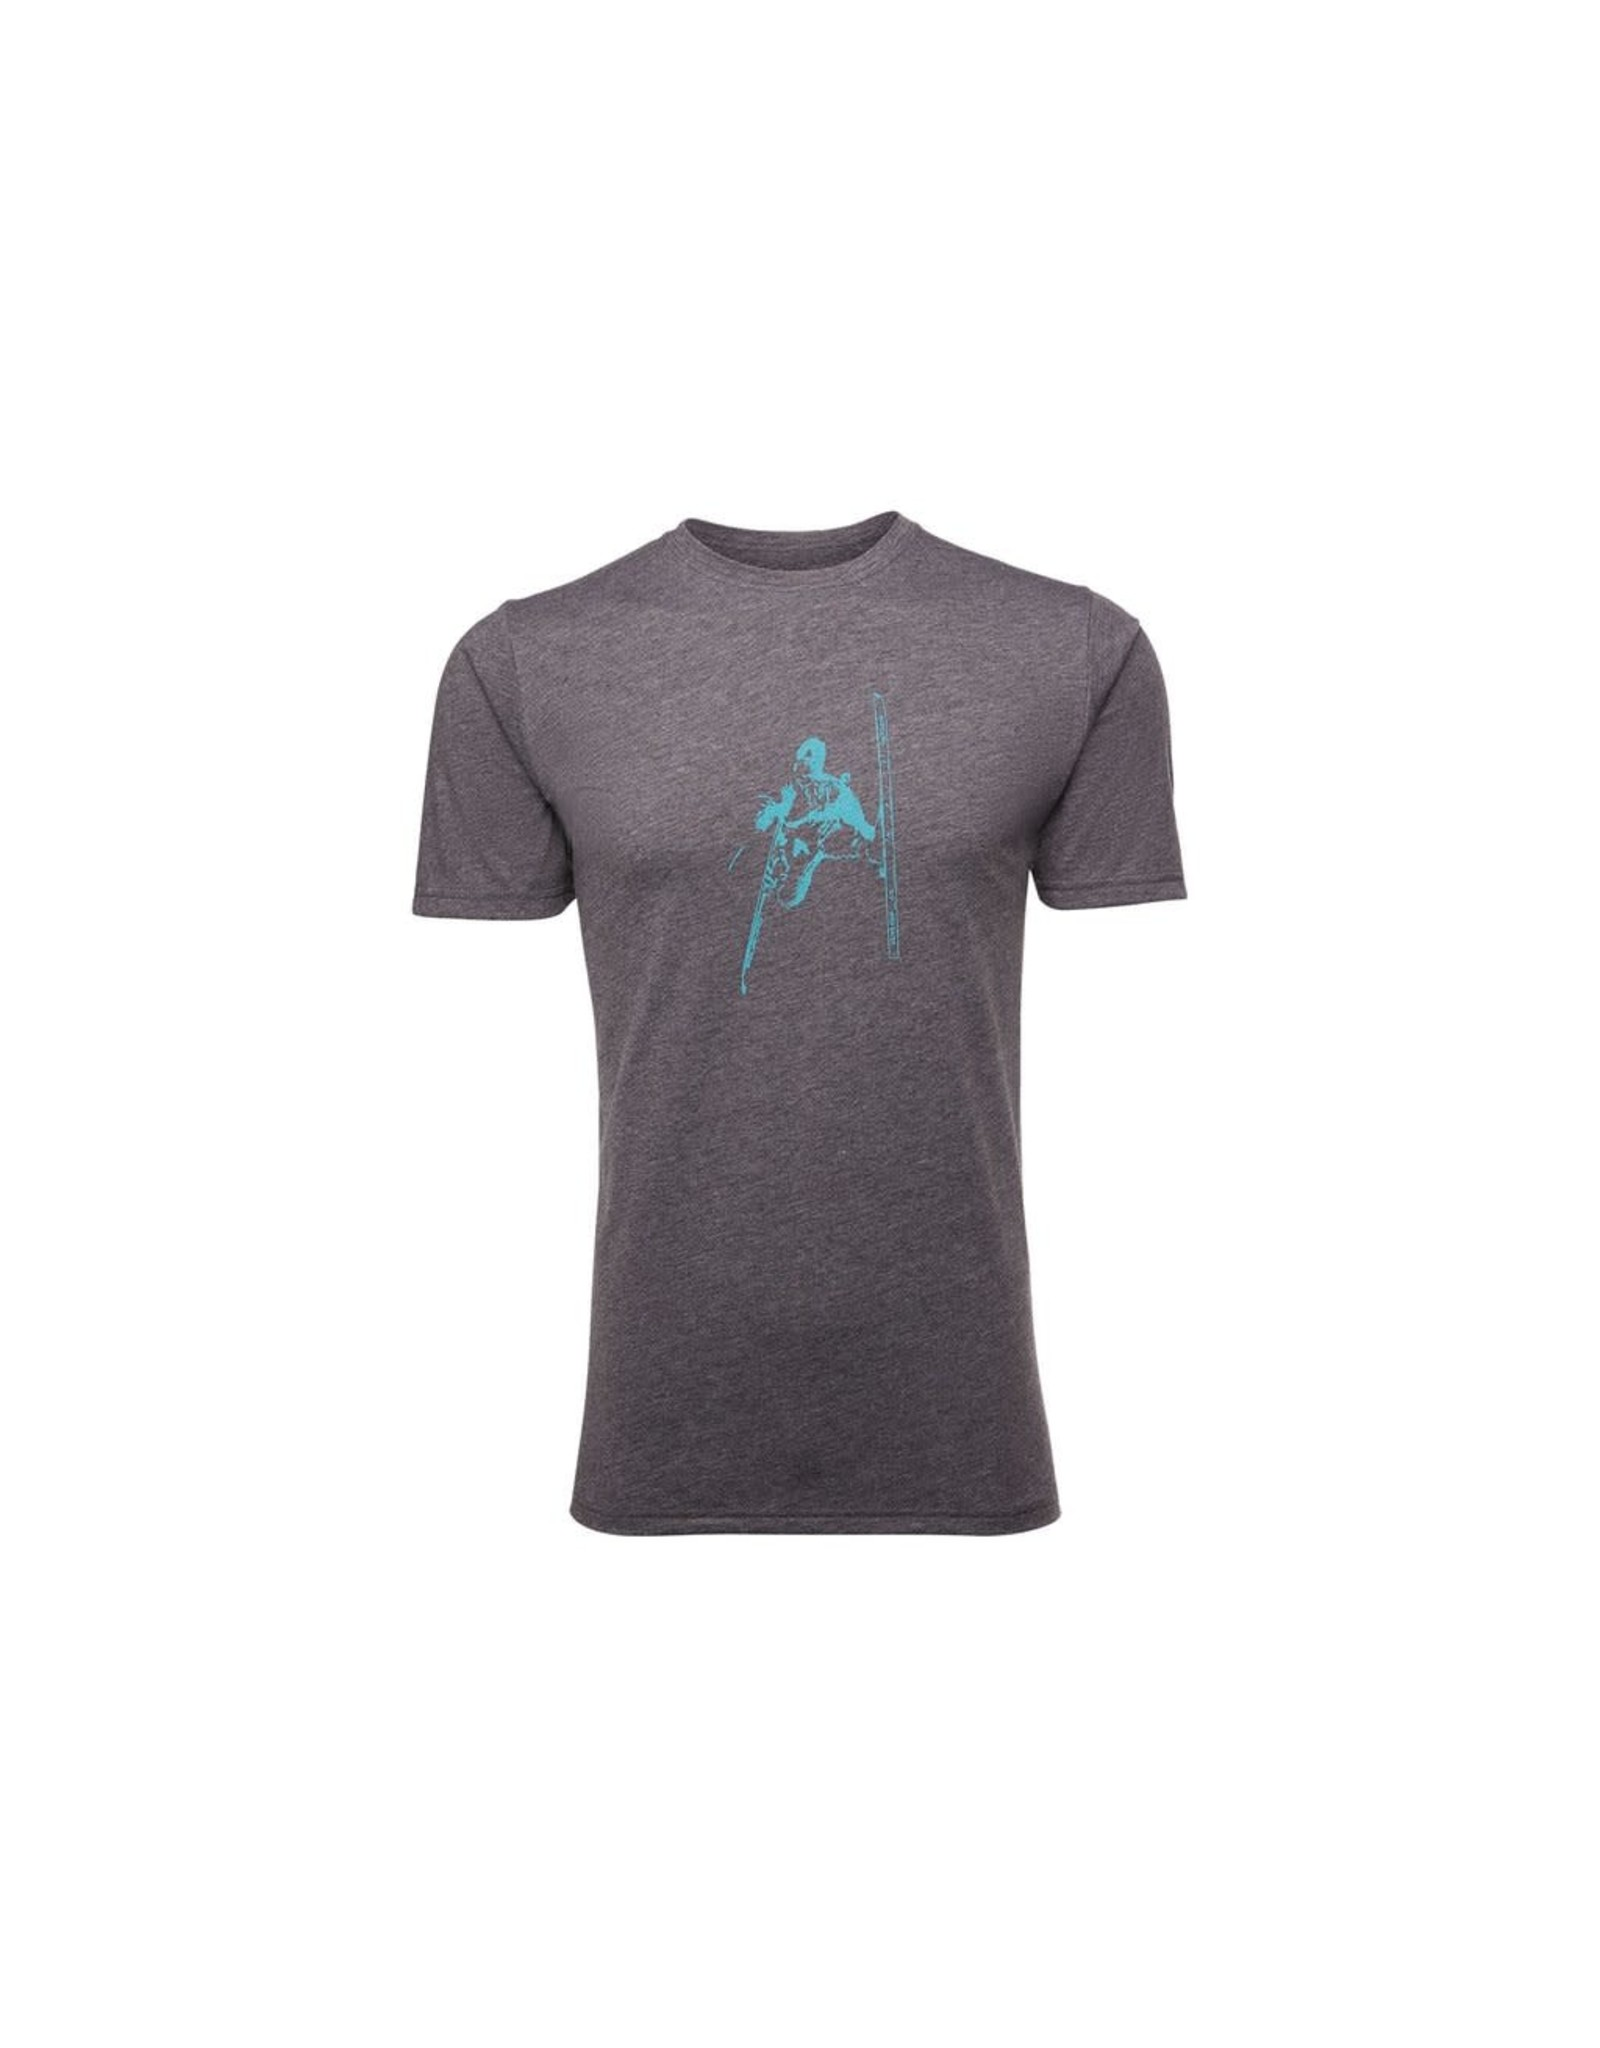 Flylow Flylow Daffy Tee - Men